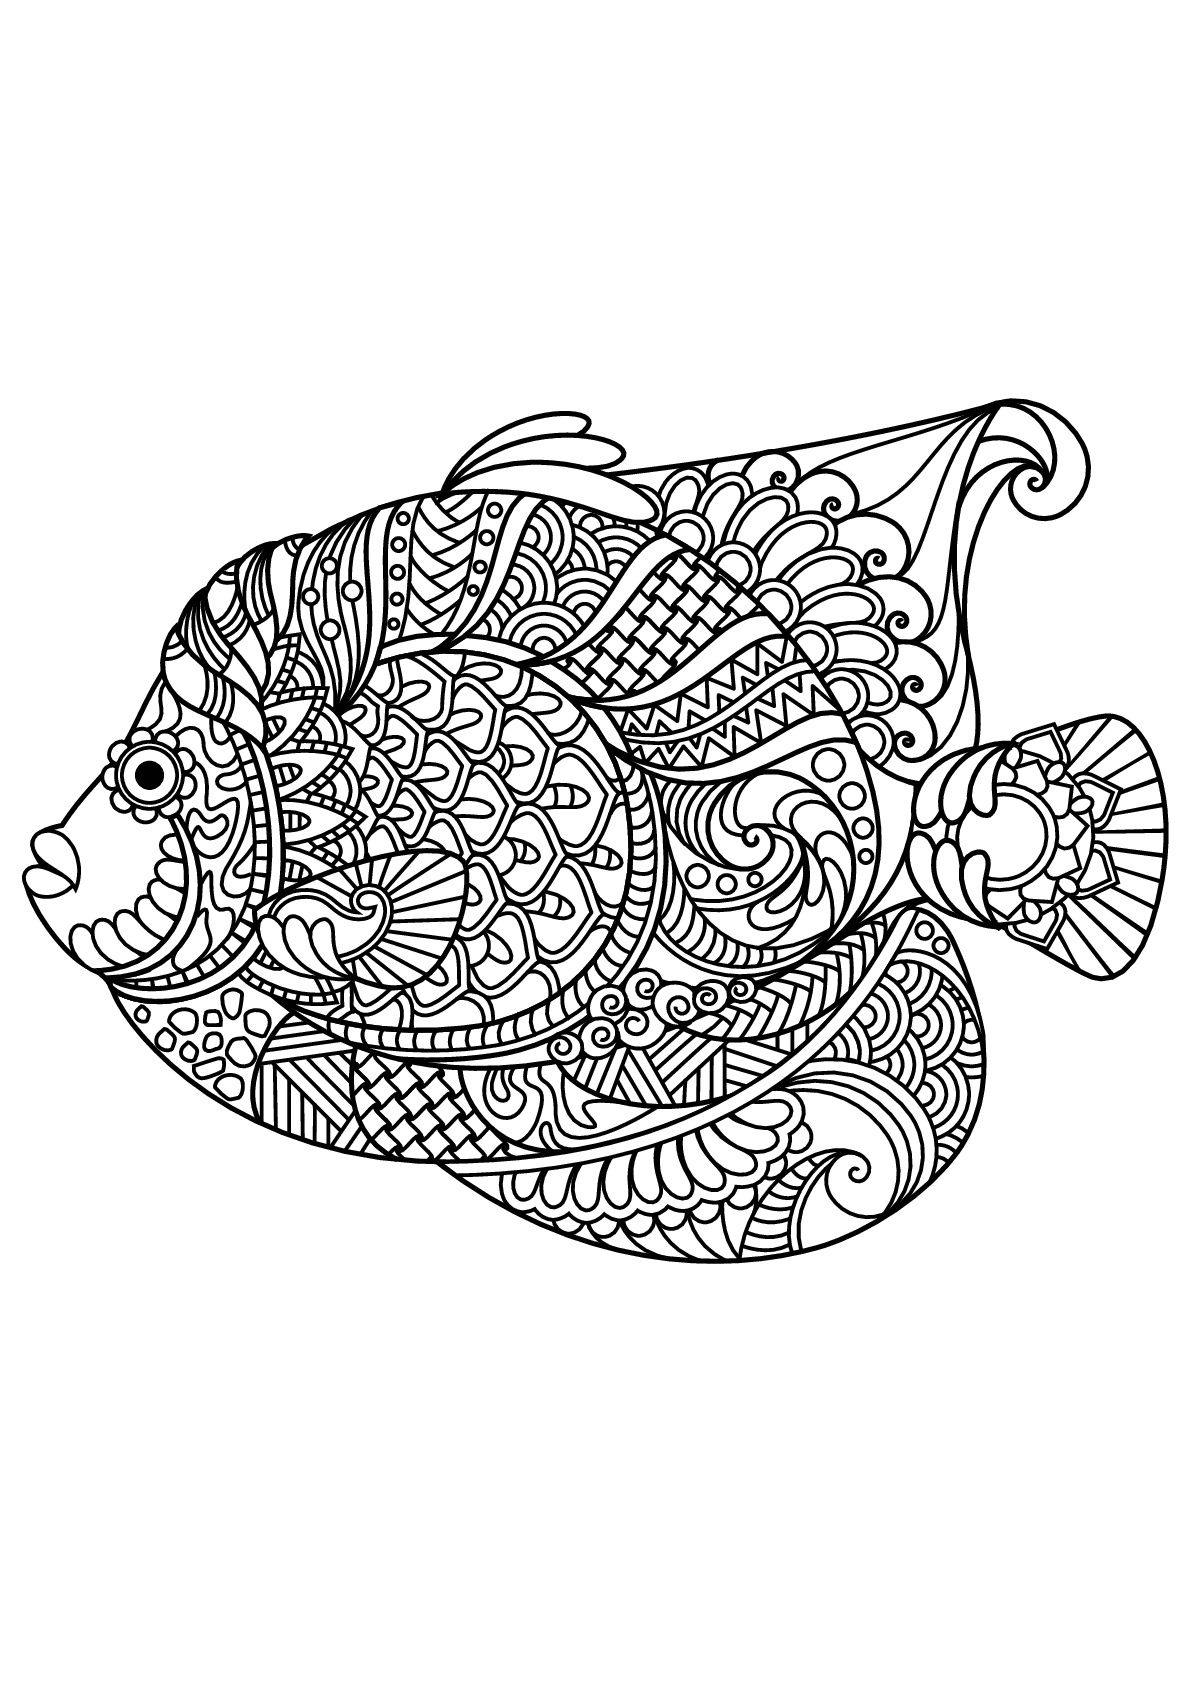 Fish, with complex and beautiful patterns